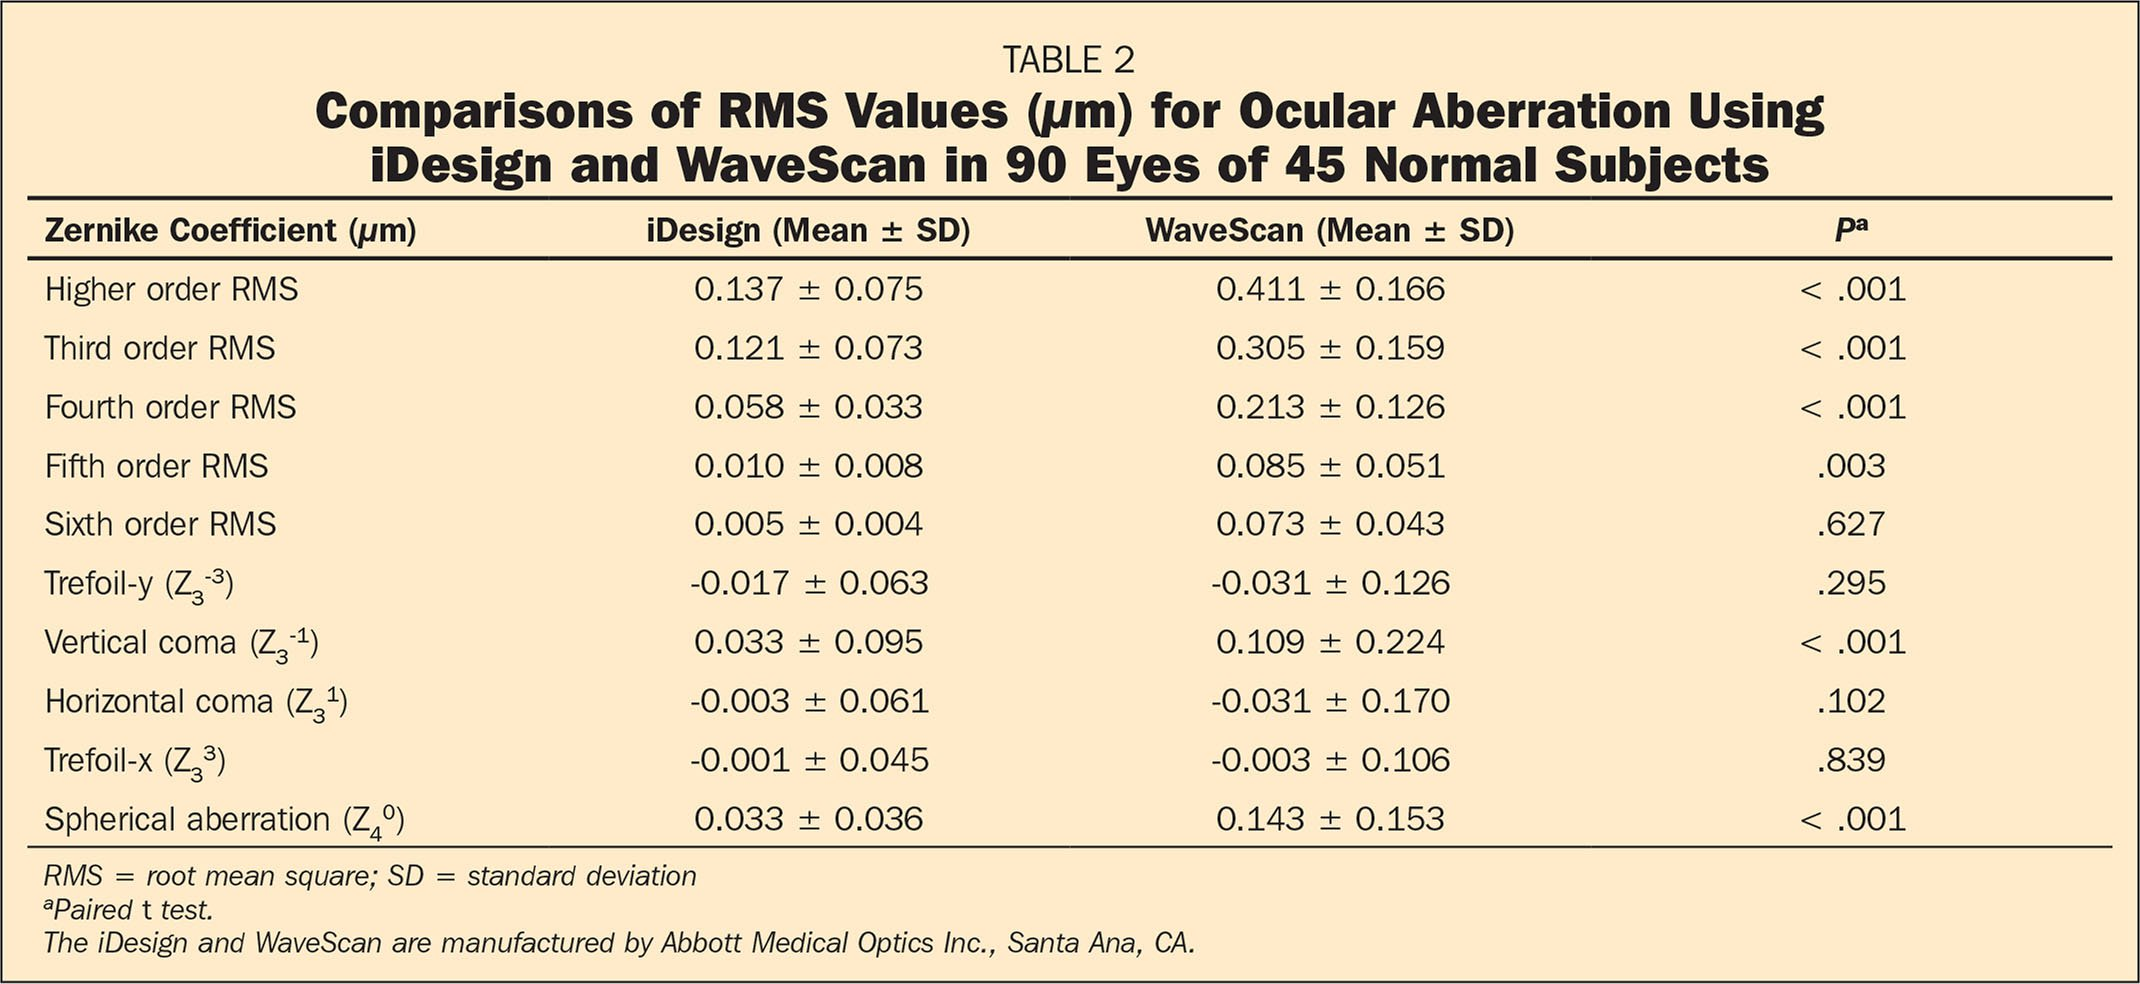 Comparisons of RMS Values (µm) for Ocular Aberration Using iDesign and WaveScan in 90 Eyes of 45 Normal Subjects